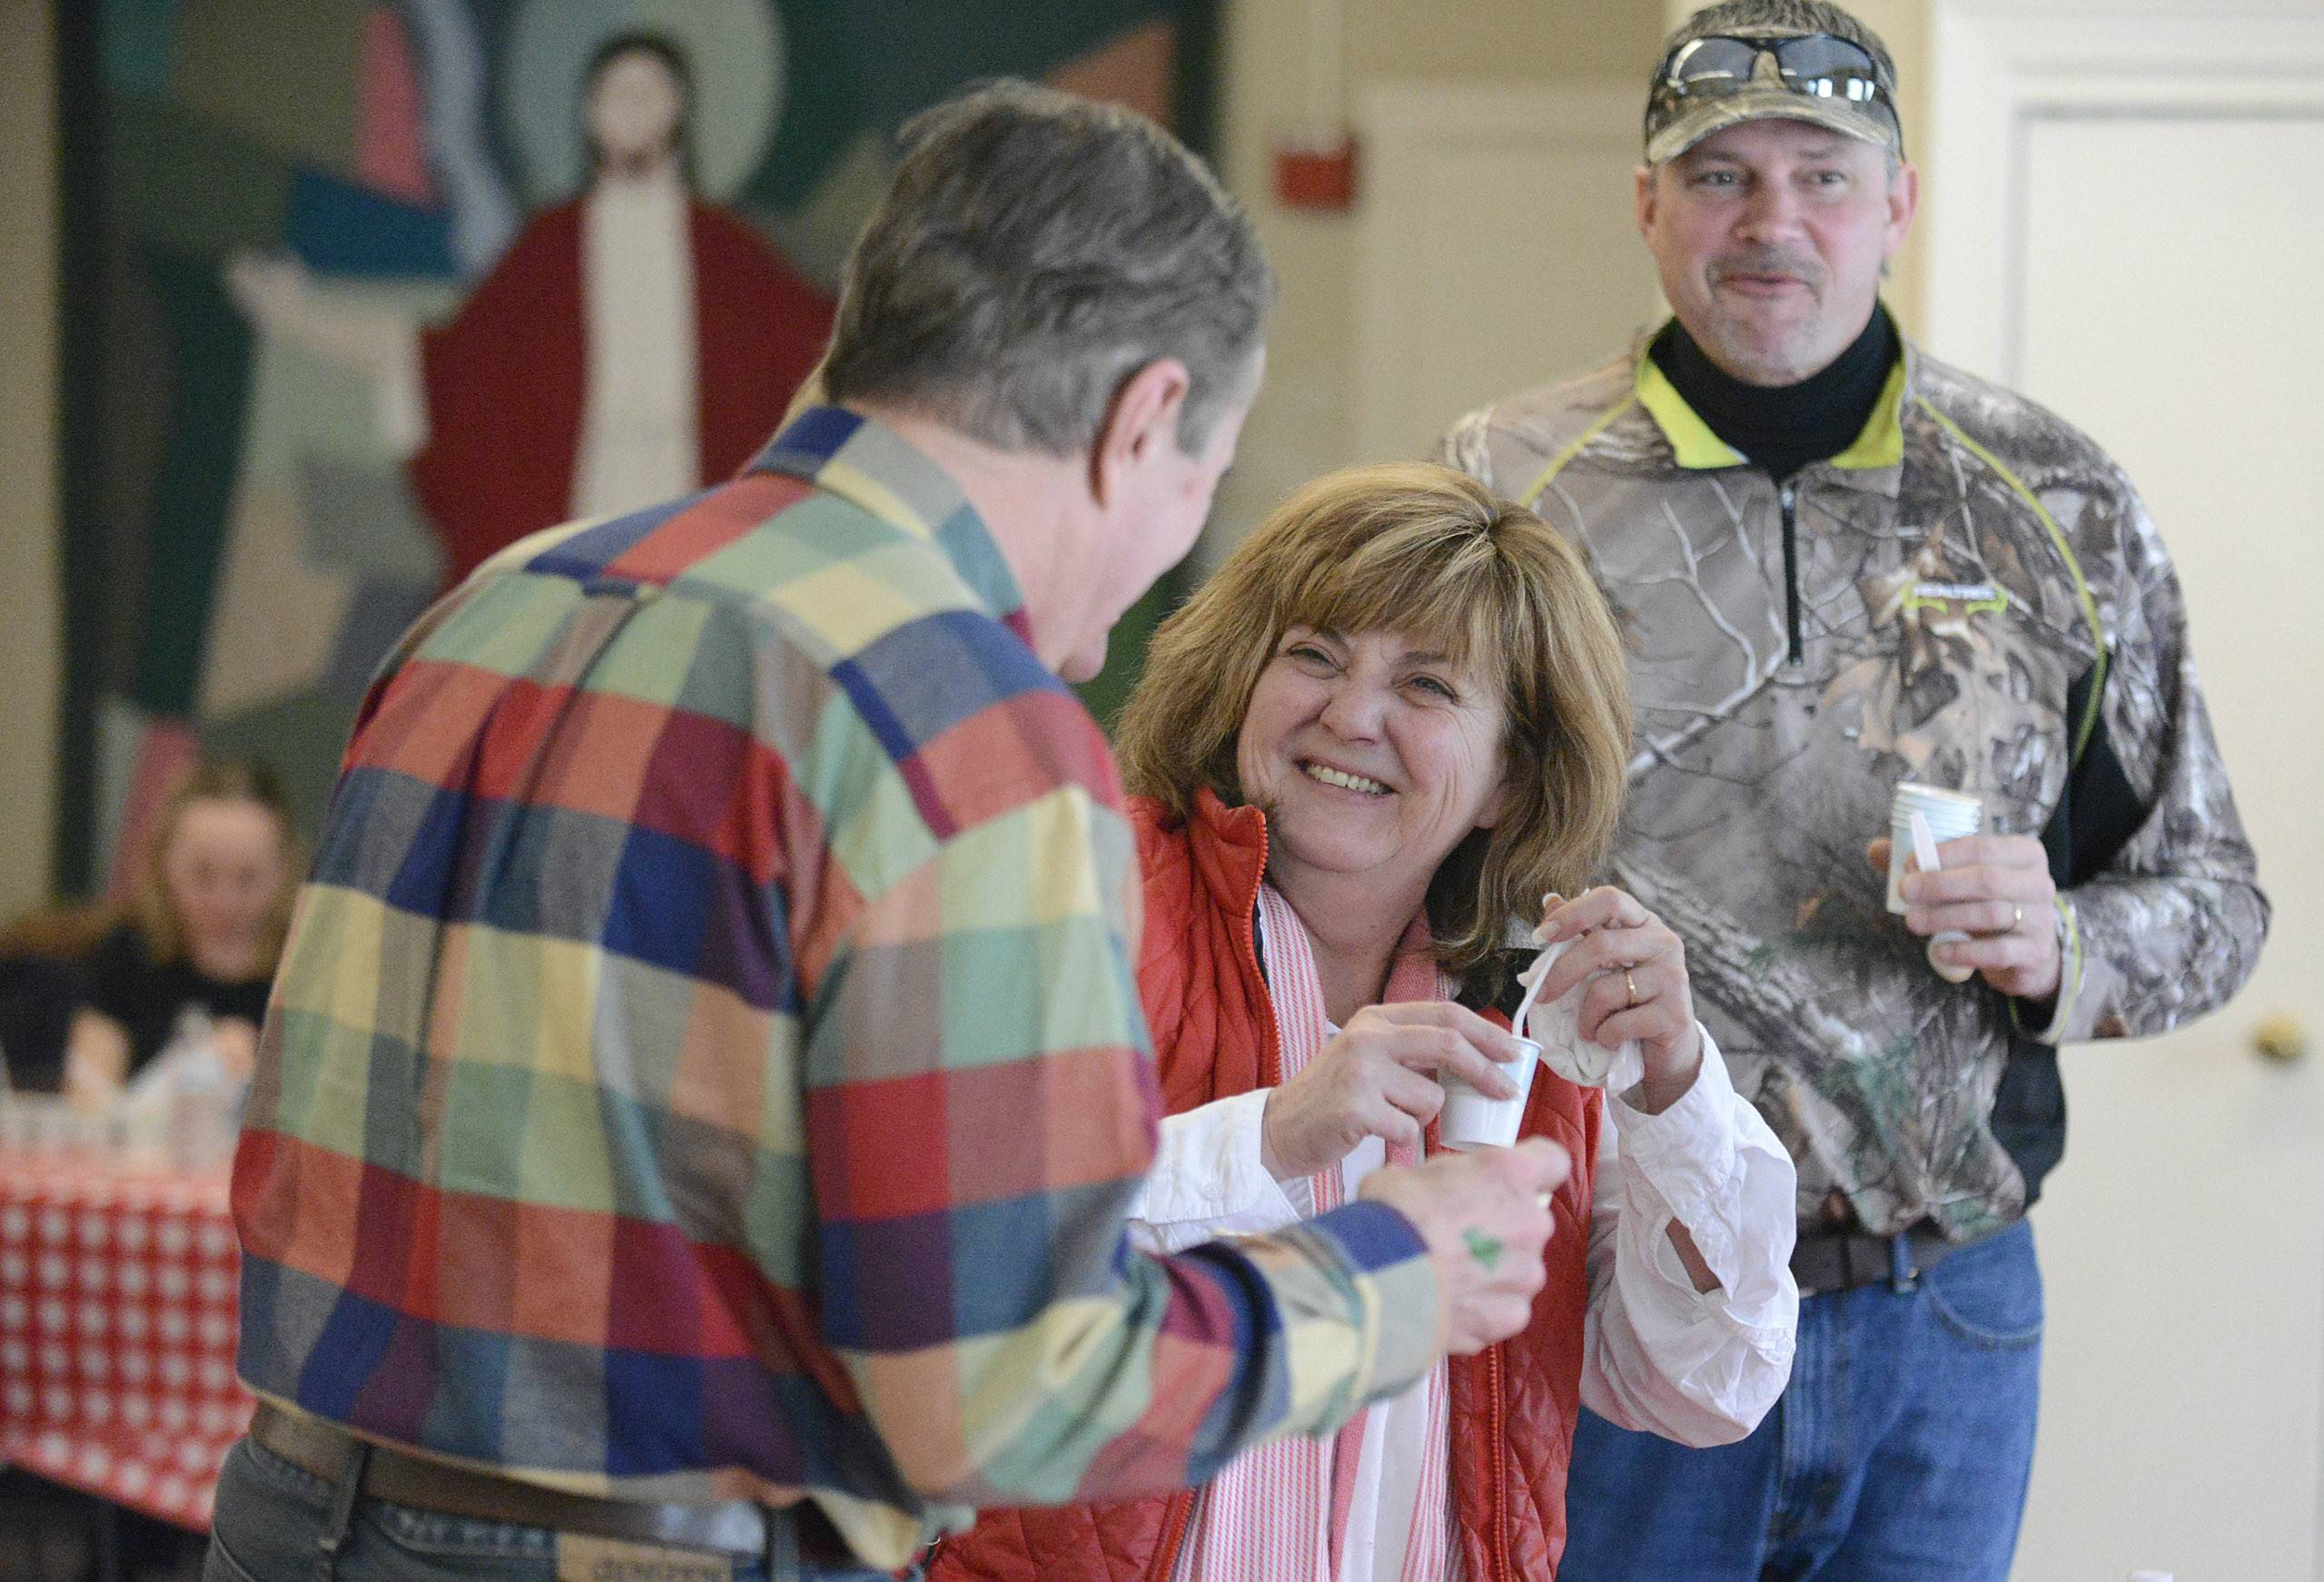 Josephine Zema of St. Charles jokes with Dick Hattan of Geneva while they sample chili by contestant Dallas Heikkinen at St. Charles Episcopal Church's chili cook-off on Saturday. Zema's friend, Halbe Wynstra of Capron, right, and his wife, Robyn attended for the fun. Zema, Hattan and Heikkinen are all parishioners at the church.